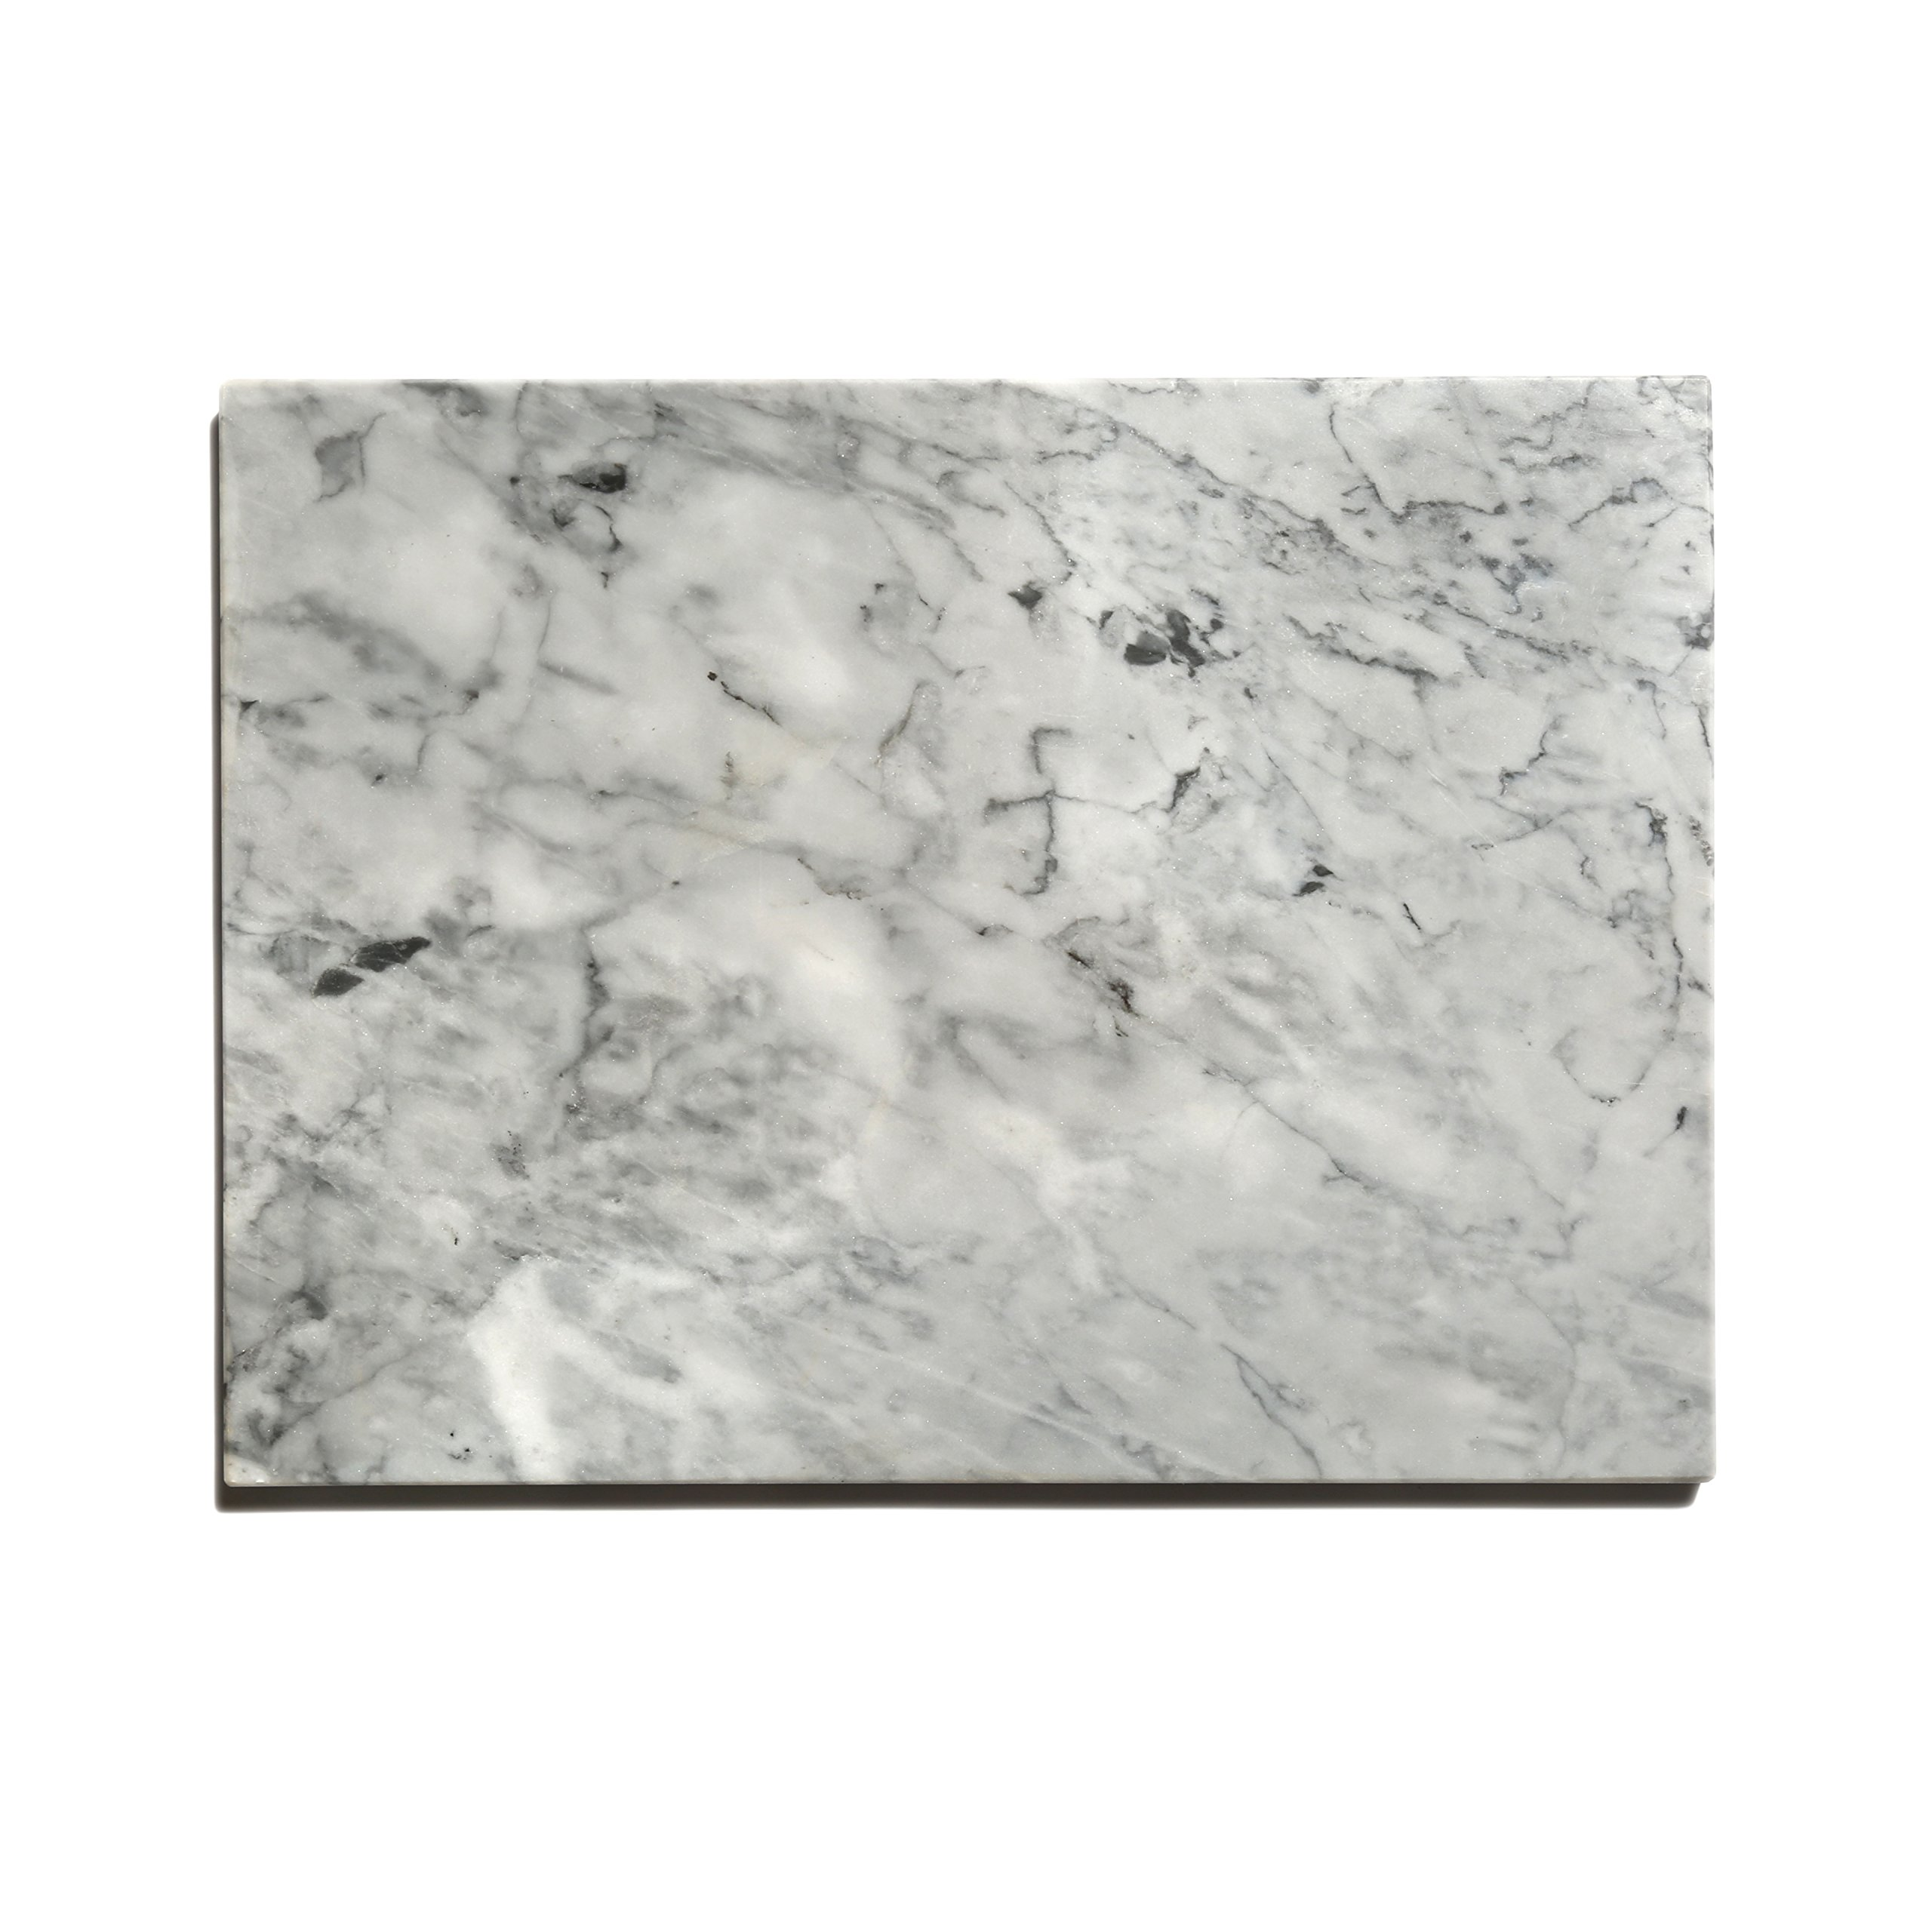 Kota Japan Premium Non-Stick Natural Marble Pastry Board Slab 12'' X 16'' with No-Slip Rubber Feet for Stability and to Protect your Countertop | Easy to Clean | Stays Cool by Kota Japan